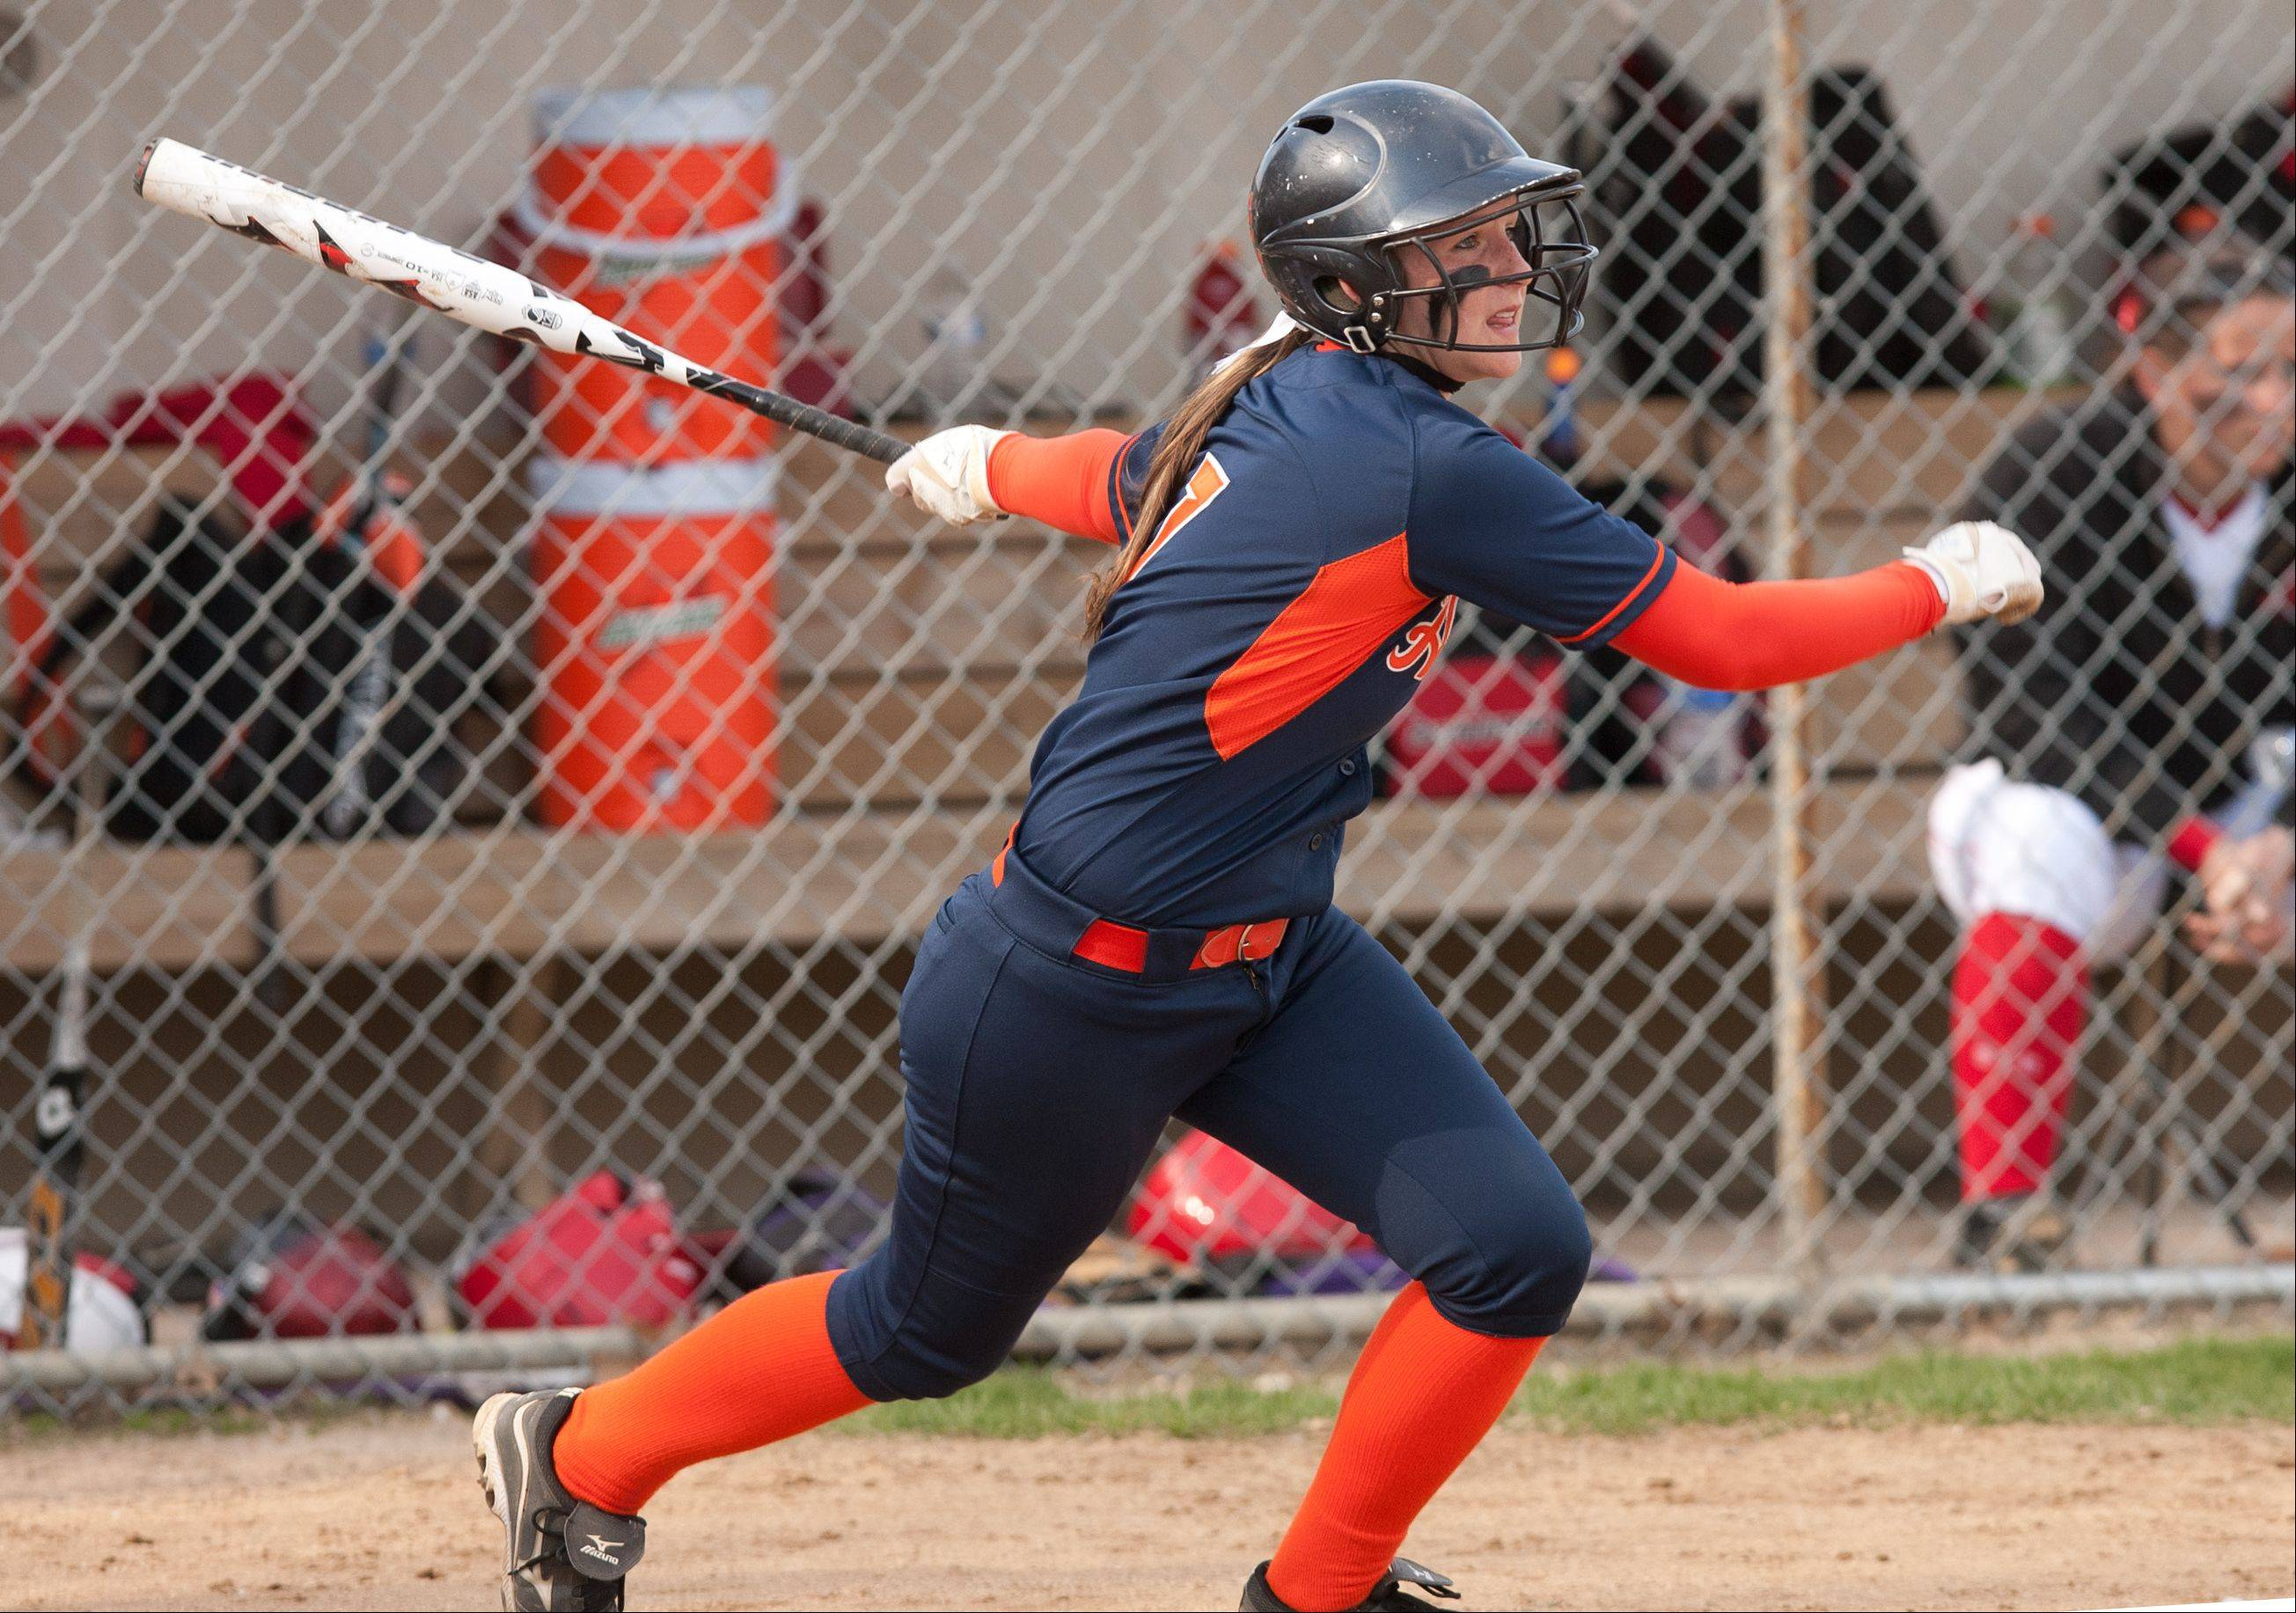 Daniel White/dwhite@dailyherald.comNaperville North's Alexis Solak doubles in two runs in the top of the second inning against Naperville Central, during girls softball action.